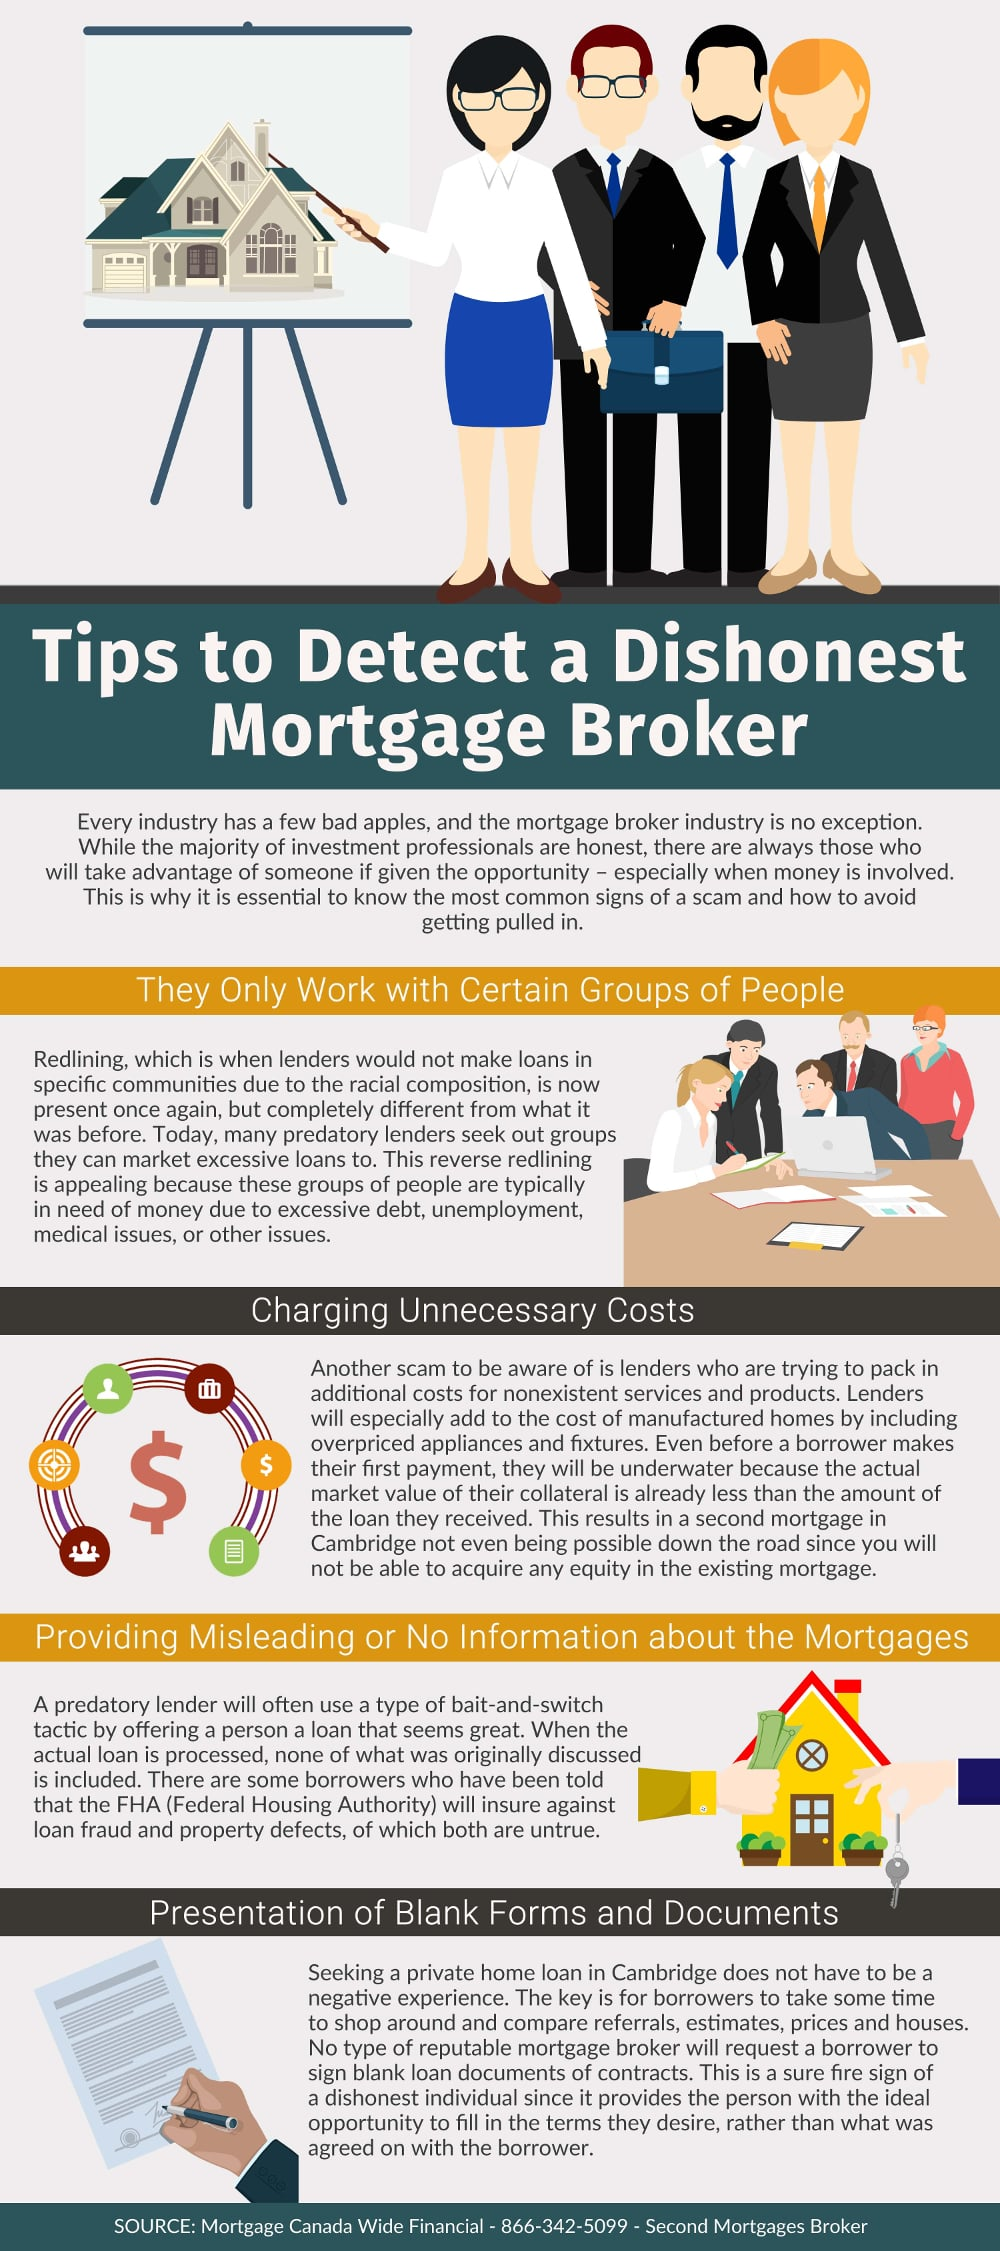 Tips to Detect a Dishonest Mortgage Broker - Infographic